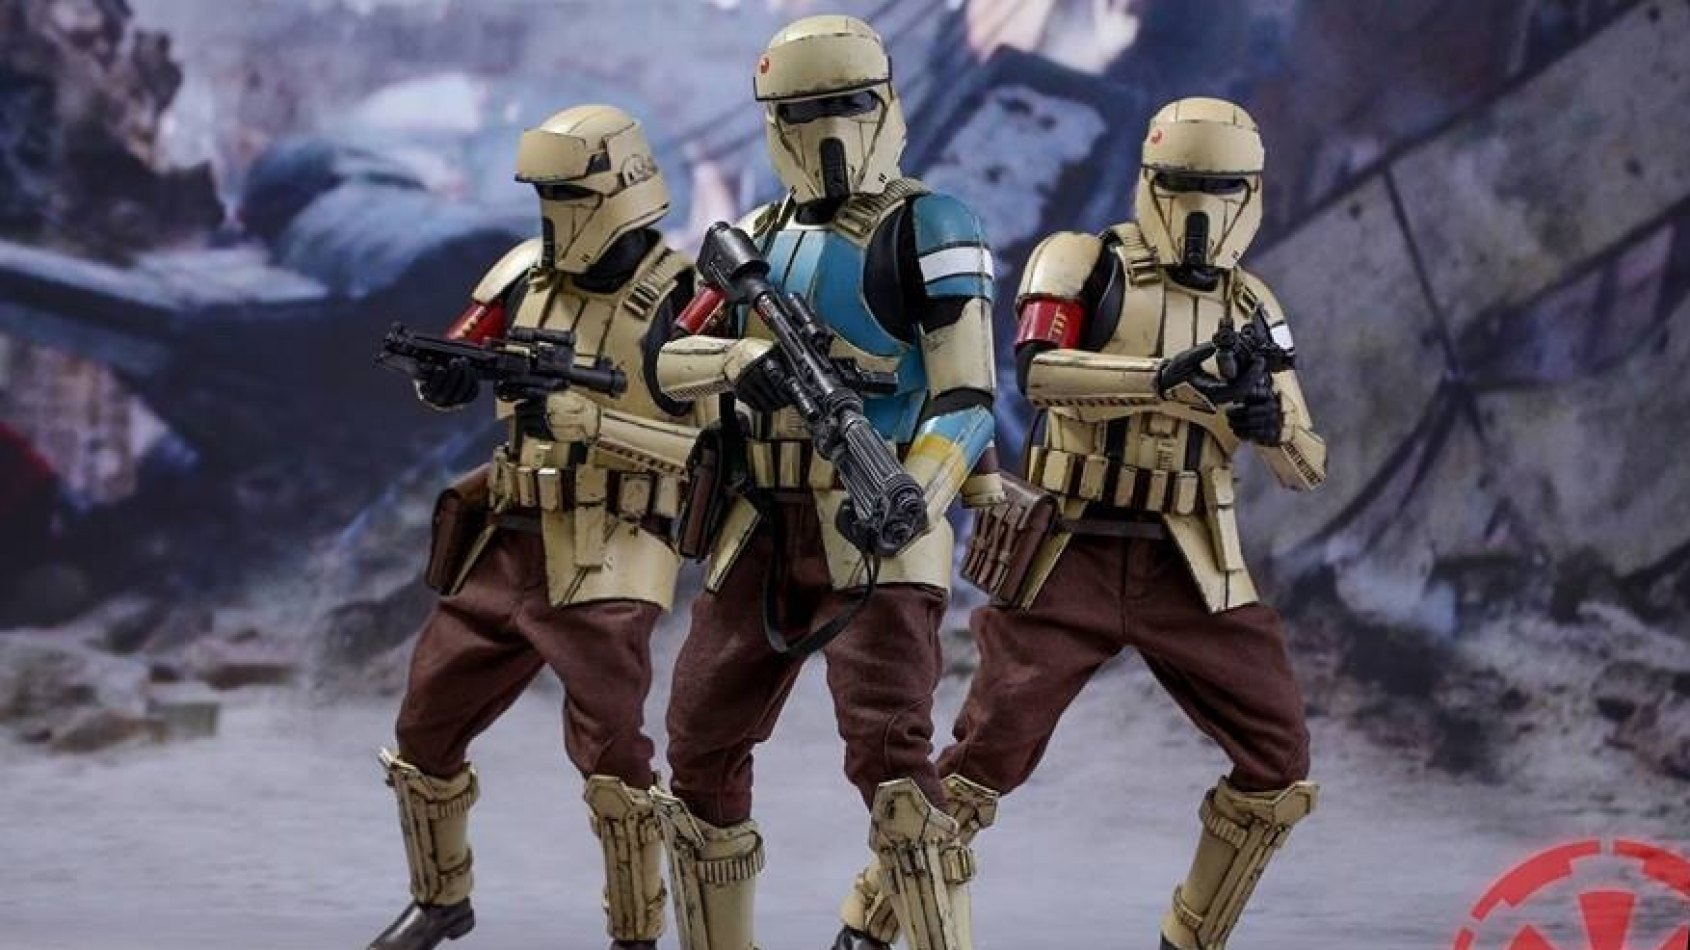 Les Shoretroopers de Rogue One arrivent chez Hot Toys